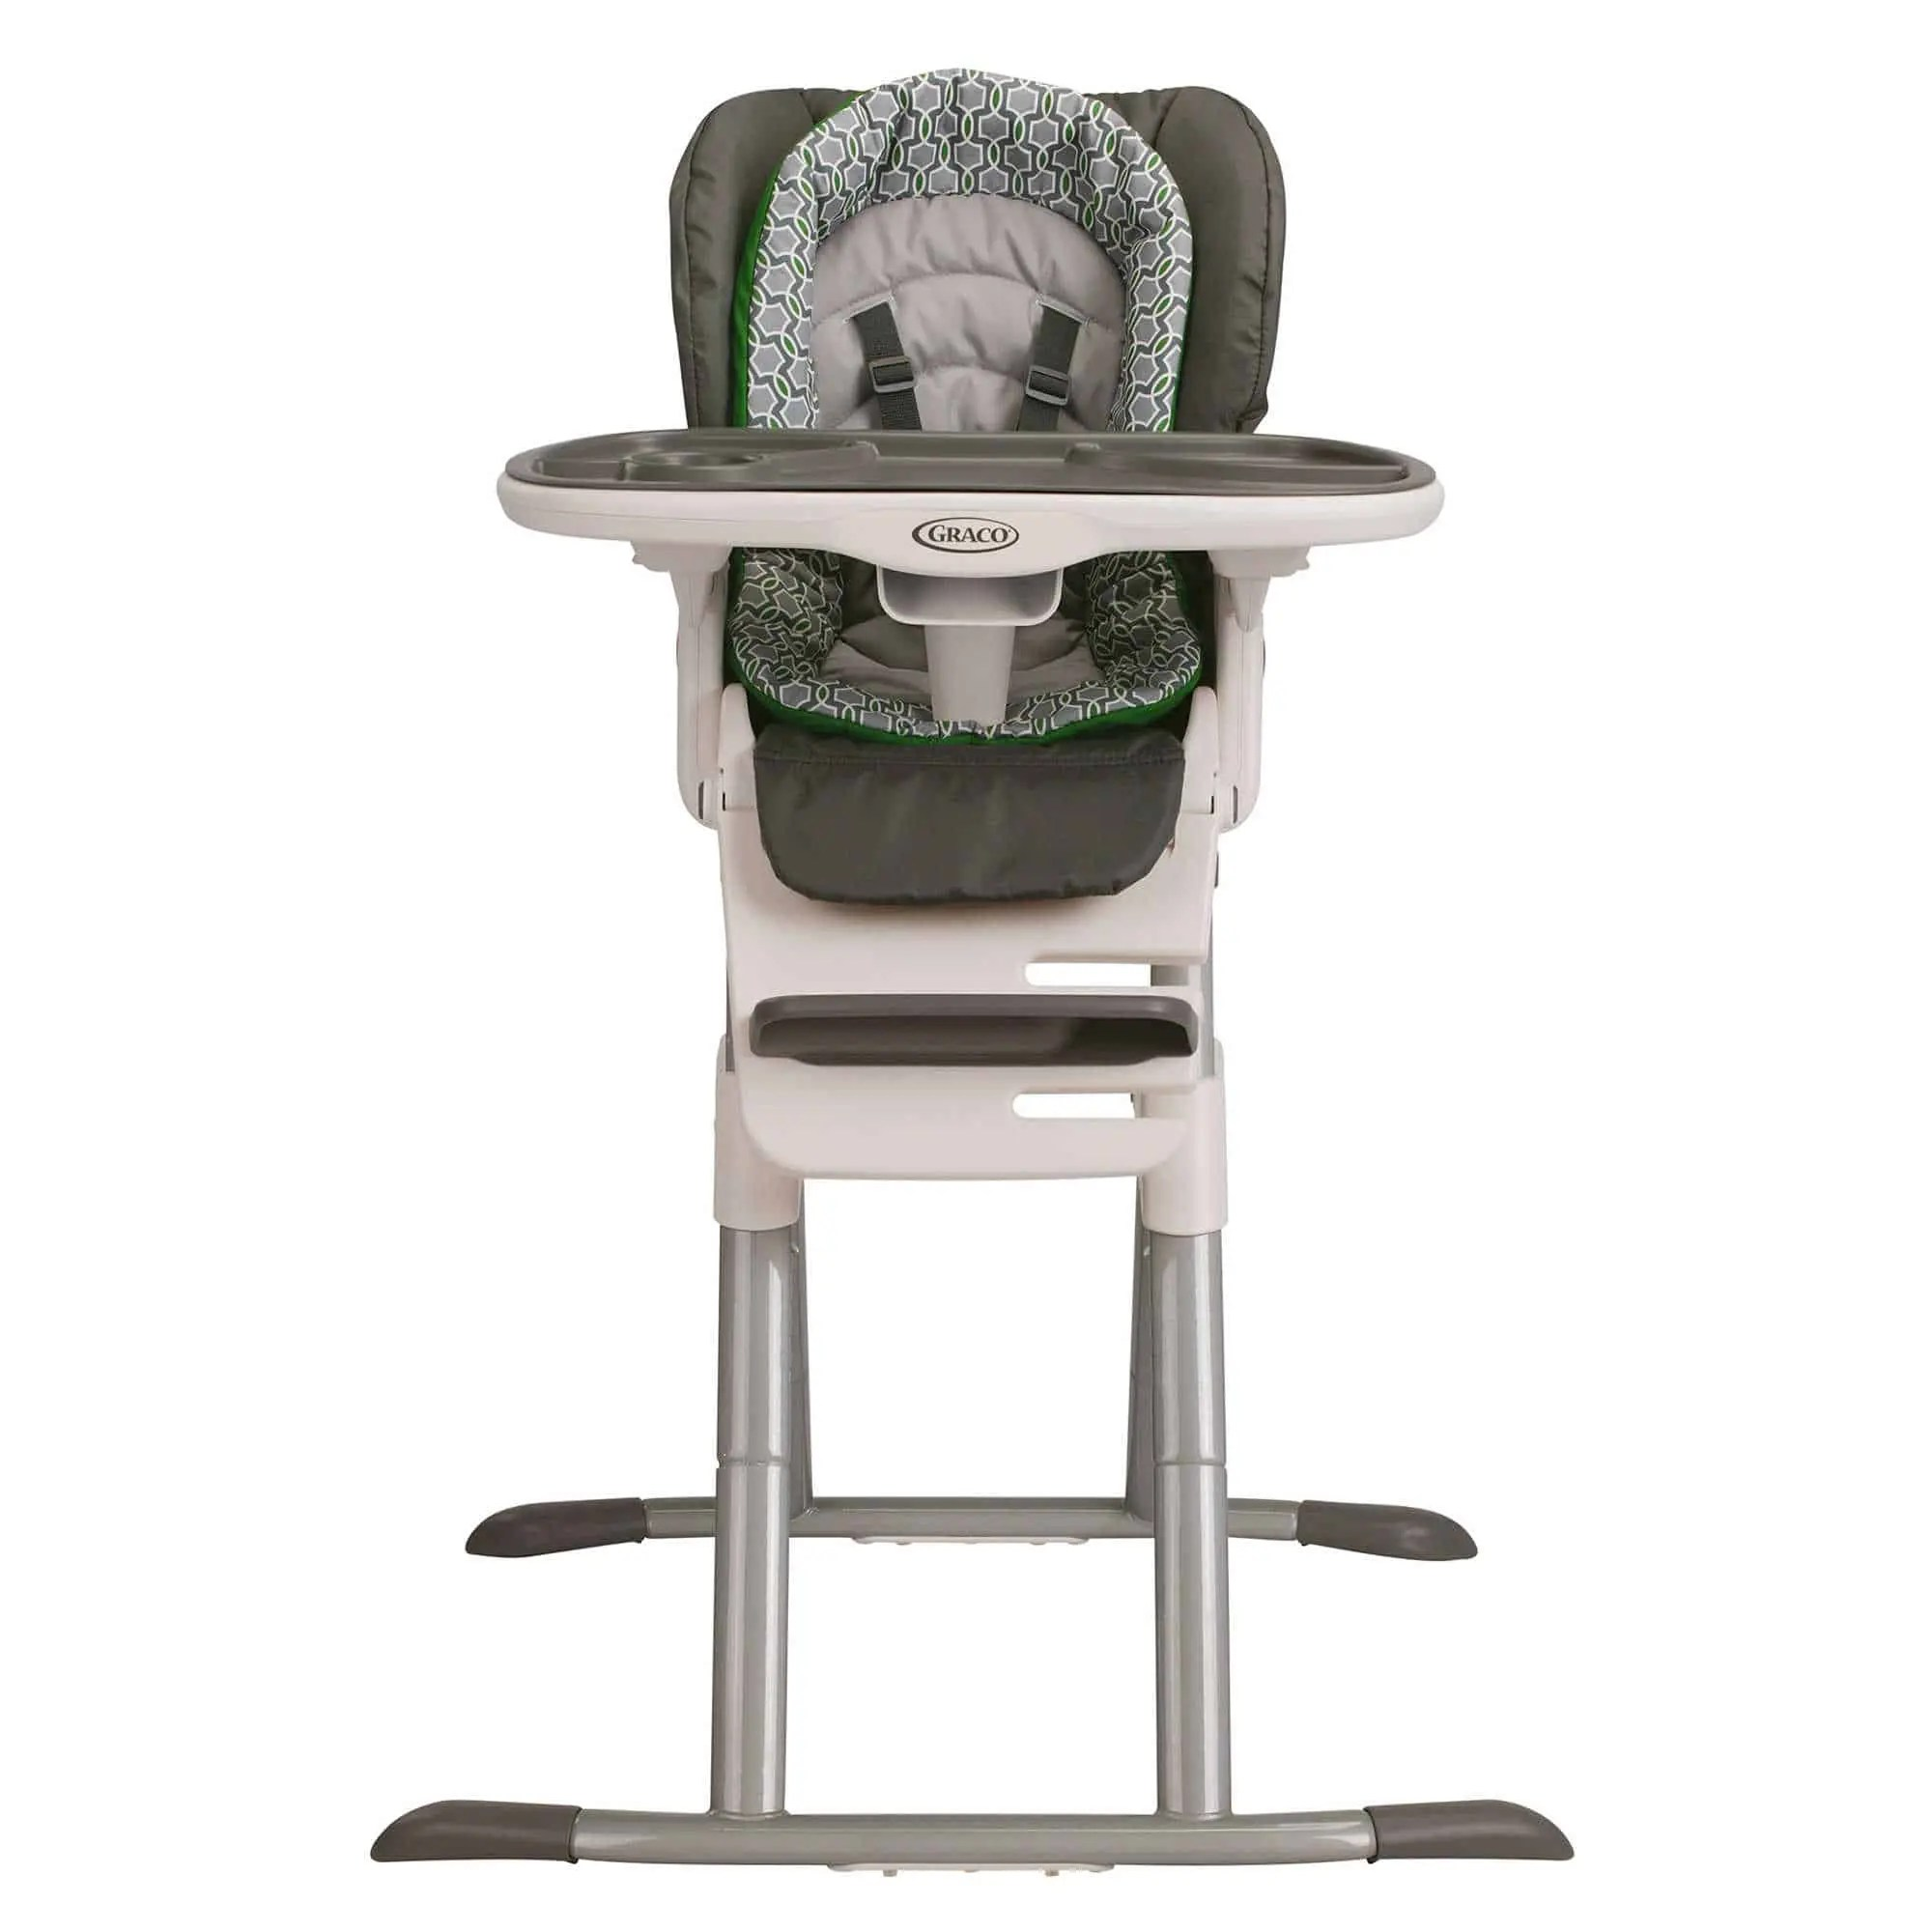 graco convertible high chair home depot rail molding swivi seat – how-to-safety, car safety specialists staten island nyc shop baby